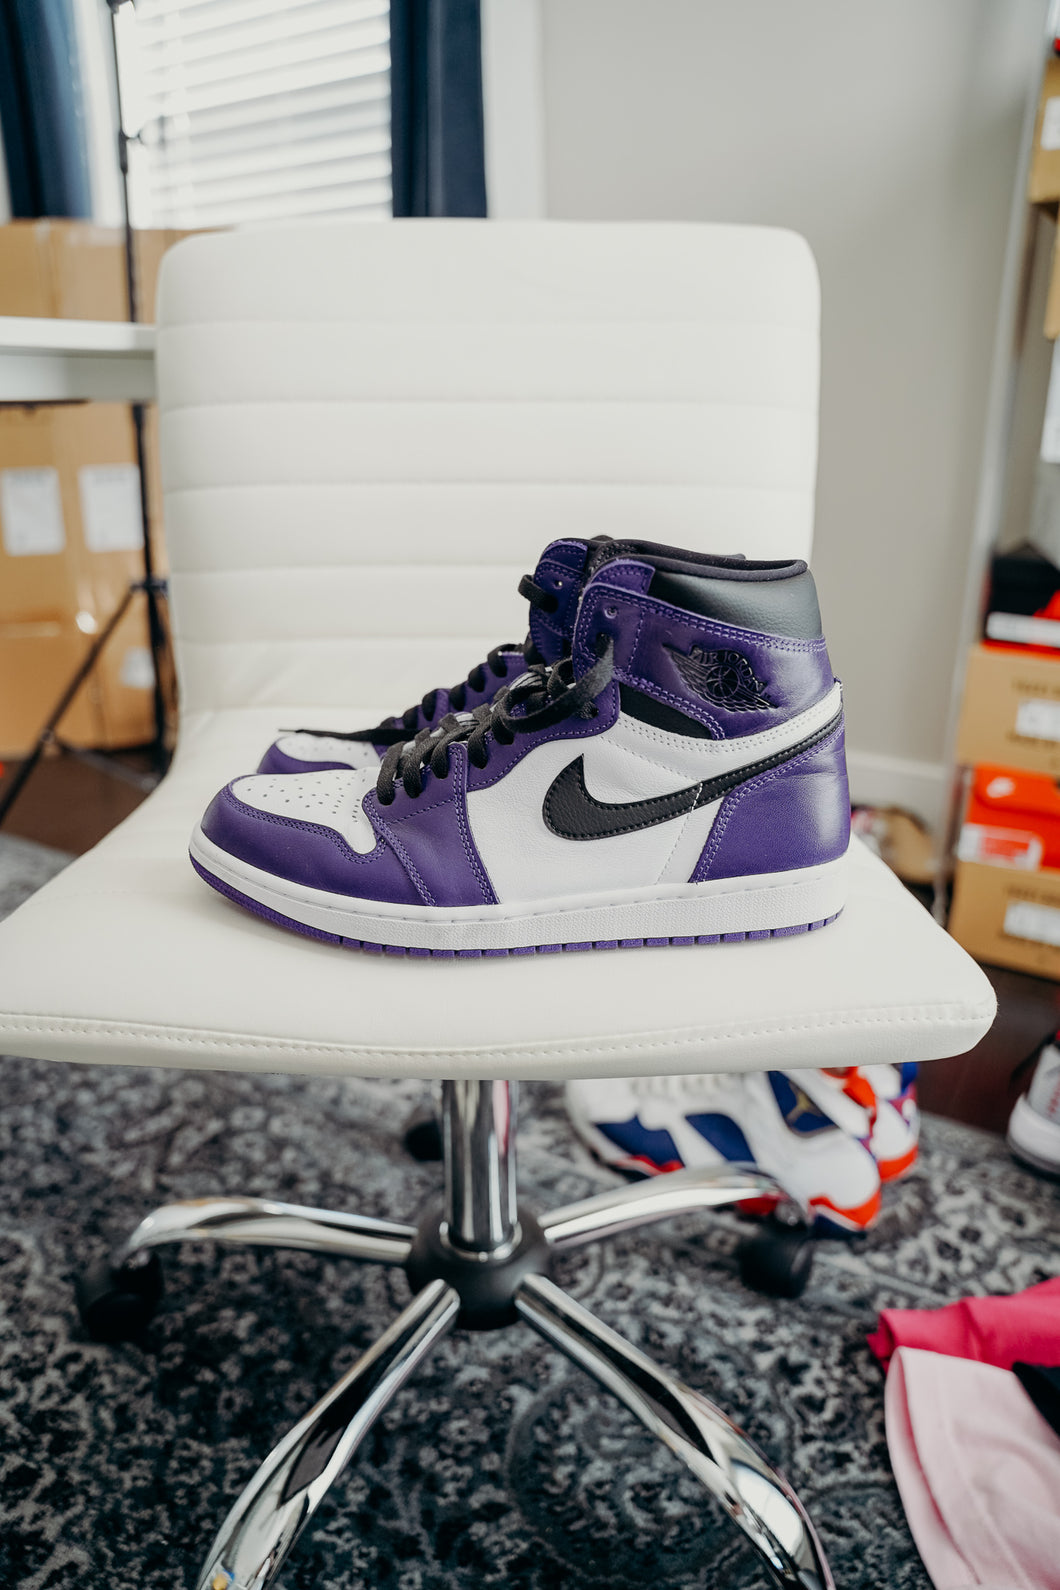 Jordan 1 Court Purple Sz 10.5